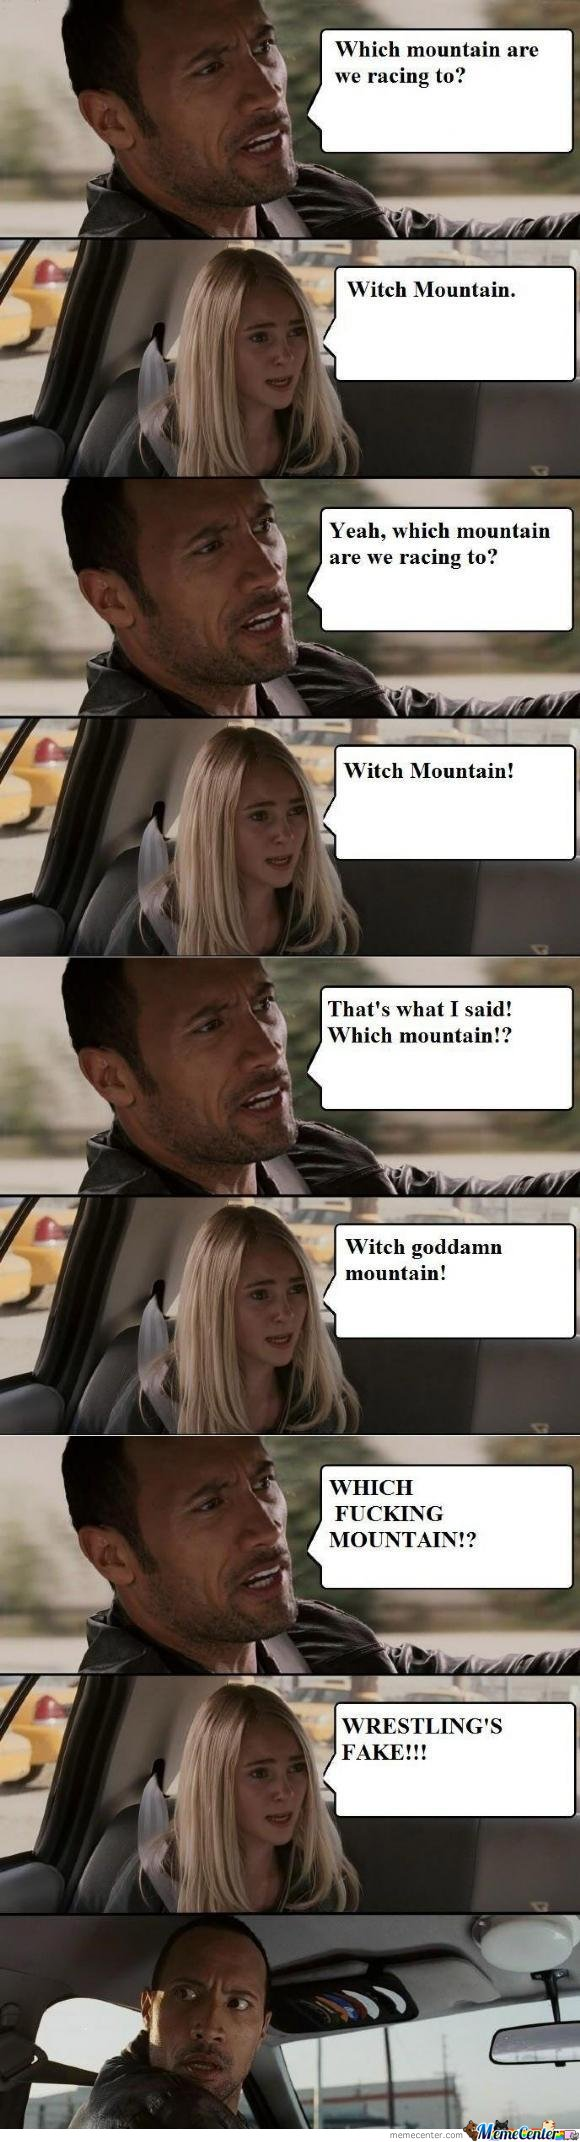 Which Mountain?!